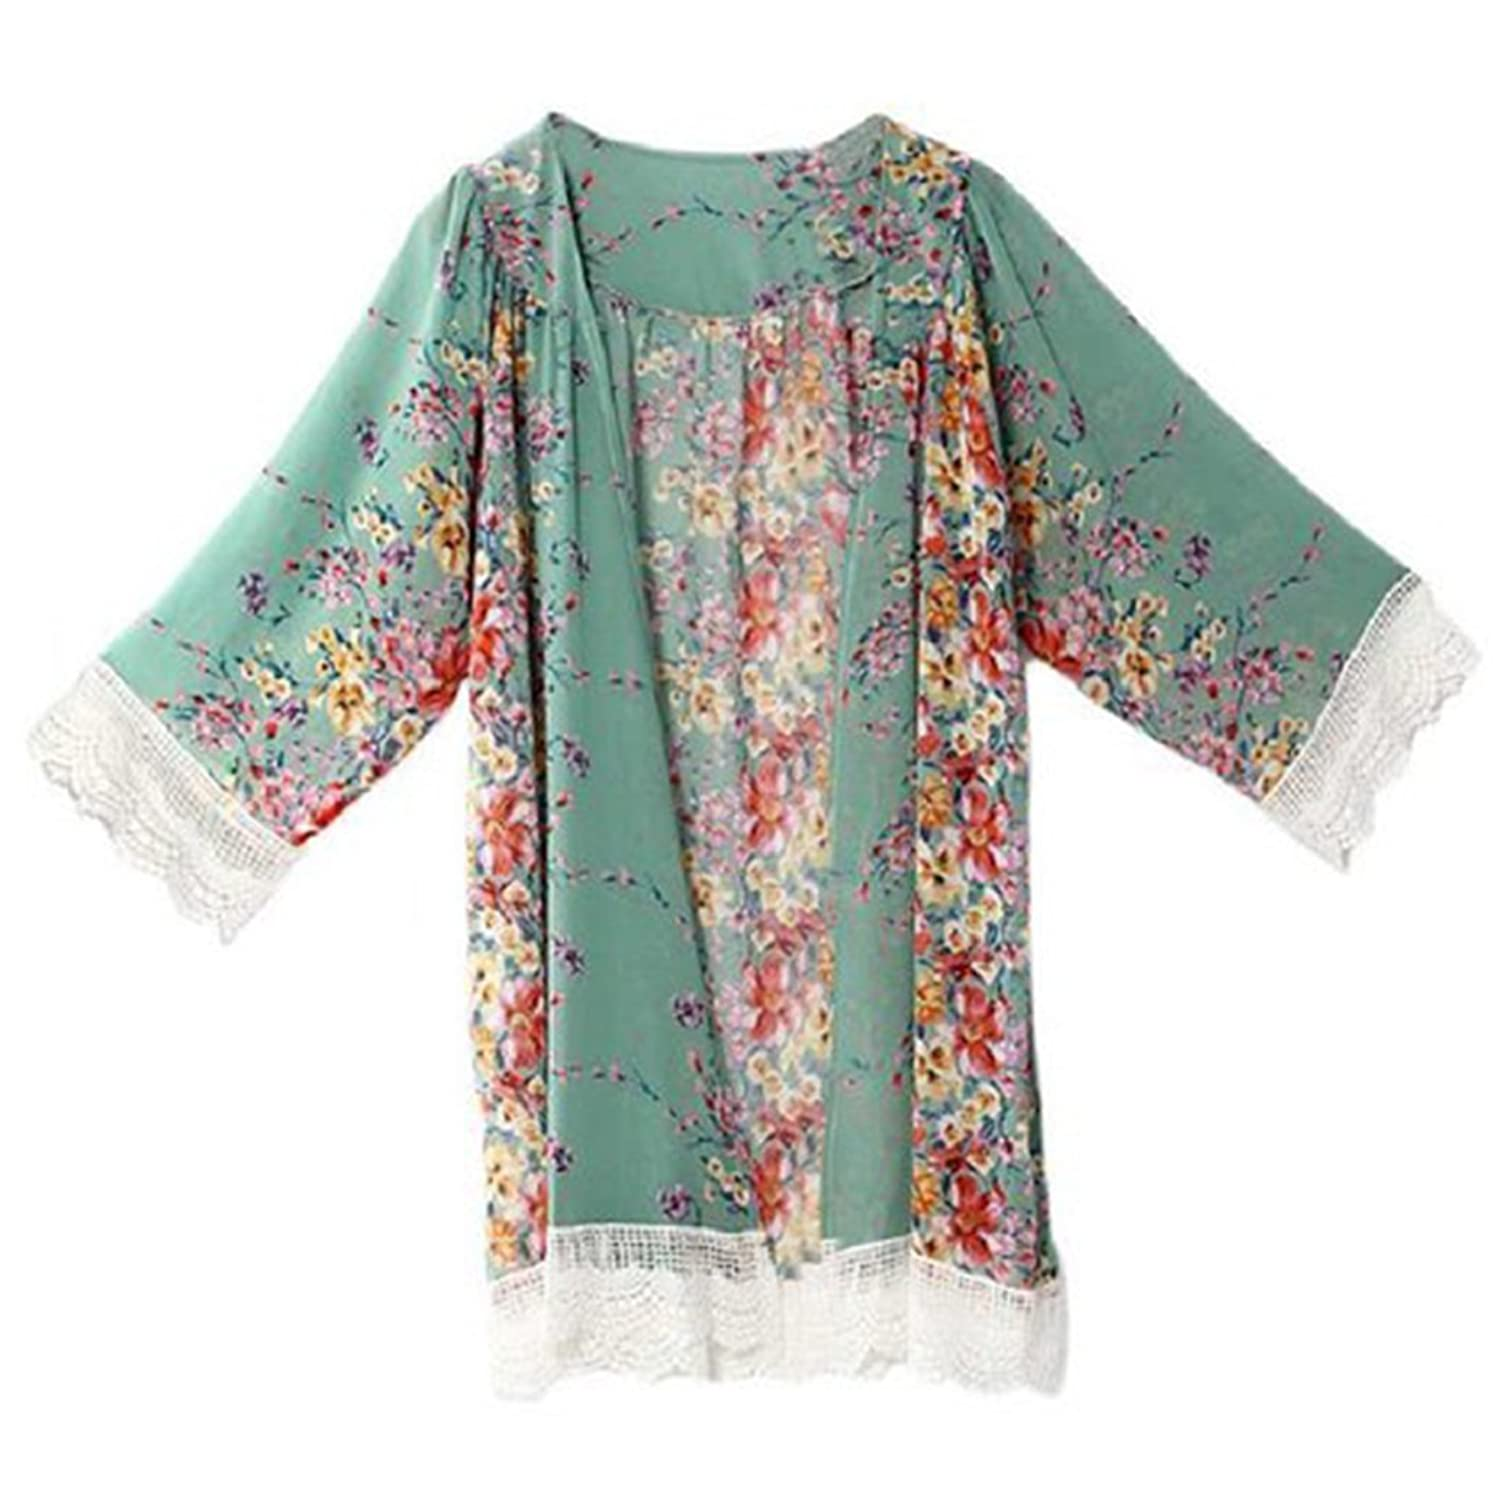 Polytree Women Chiffon Floral Cardigan Midi Sleeve Tops Cover Up Blouse